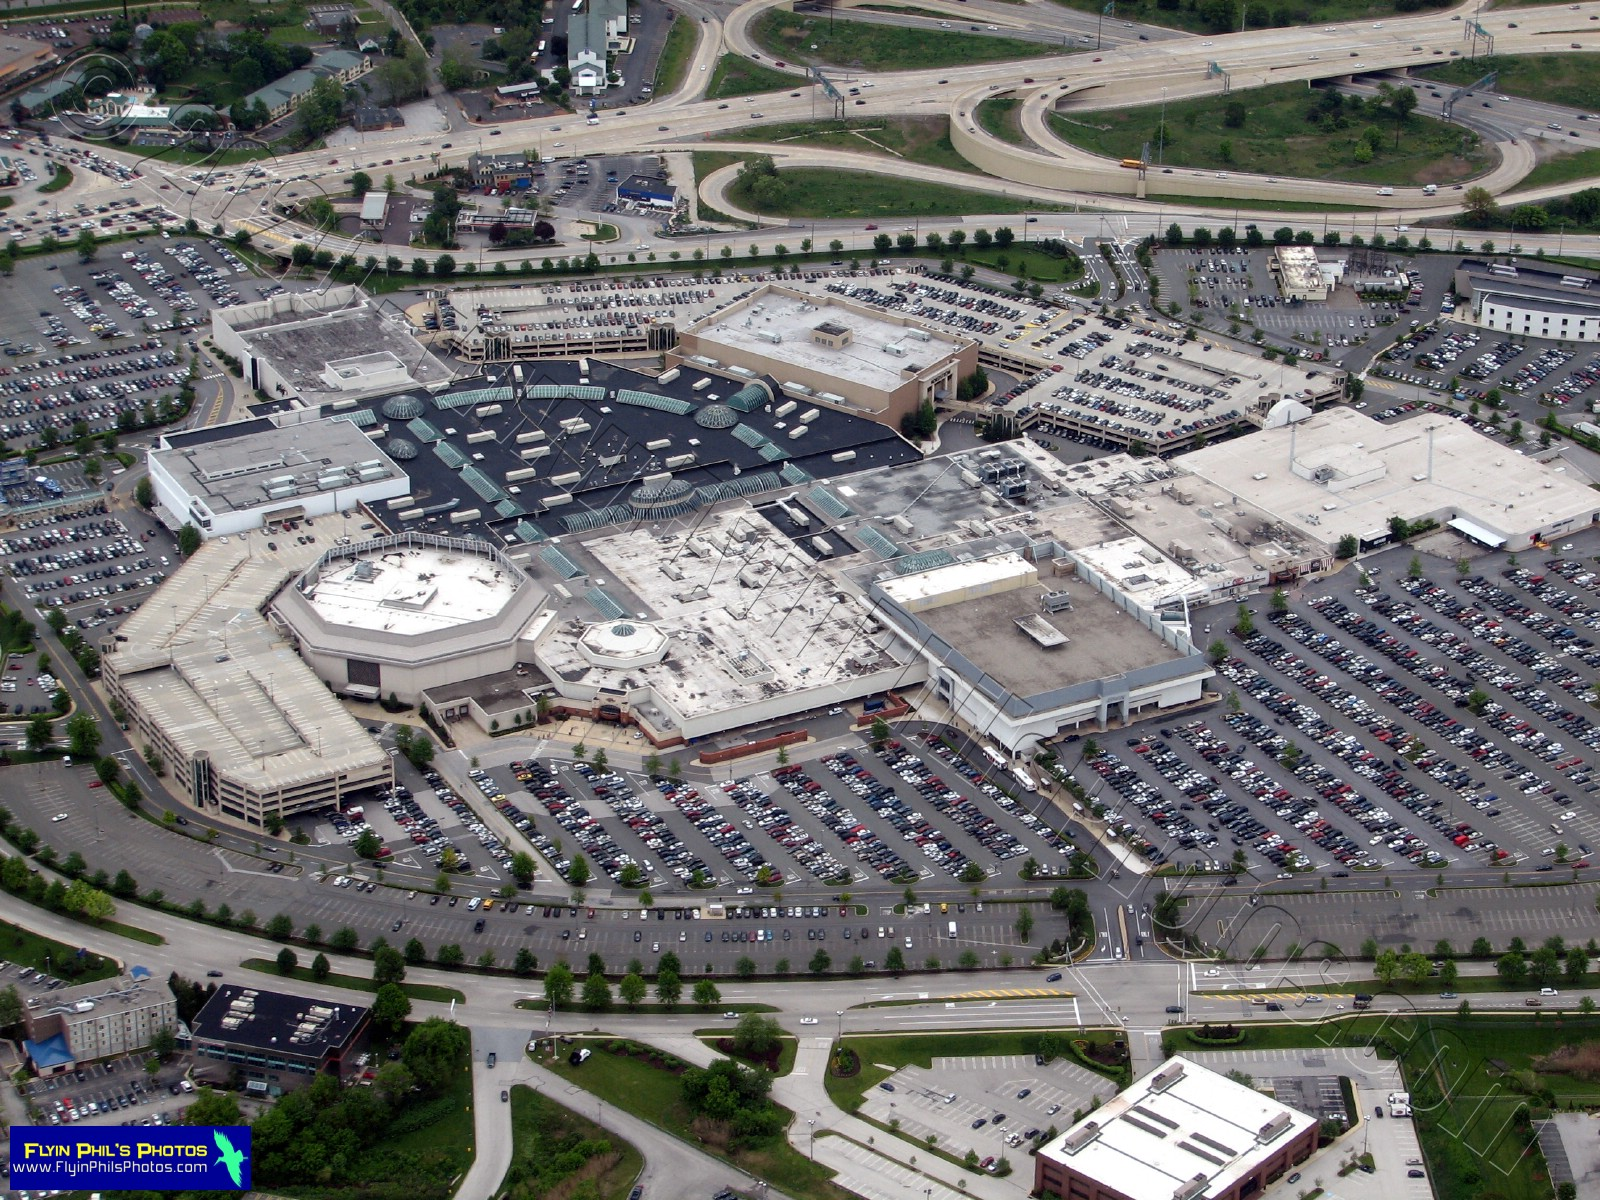 Fly'in Phil's Photos - Shopping Malls & Stores Aerial Photo SEARCH ...